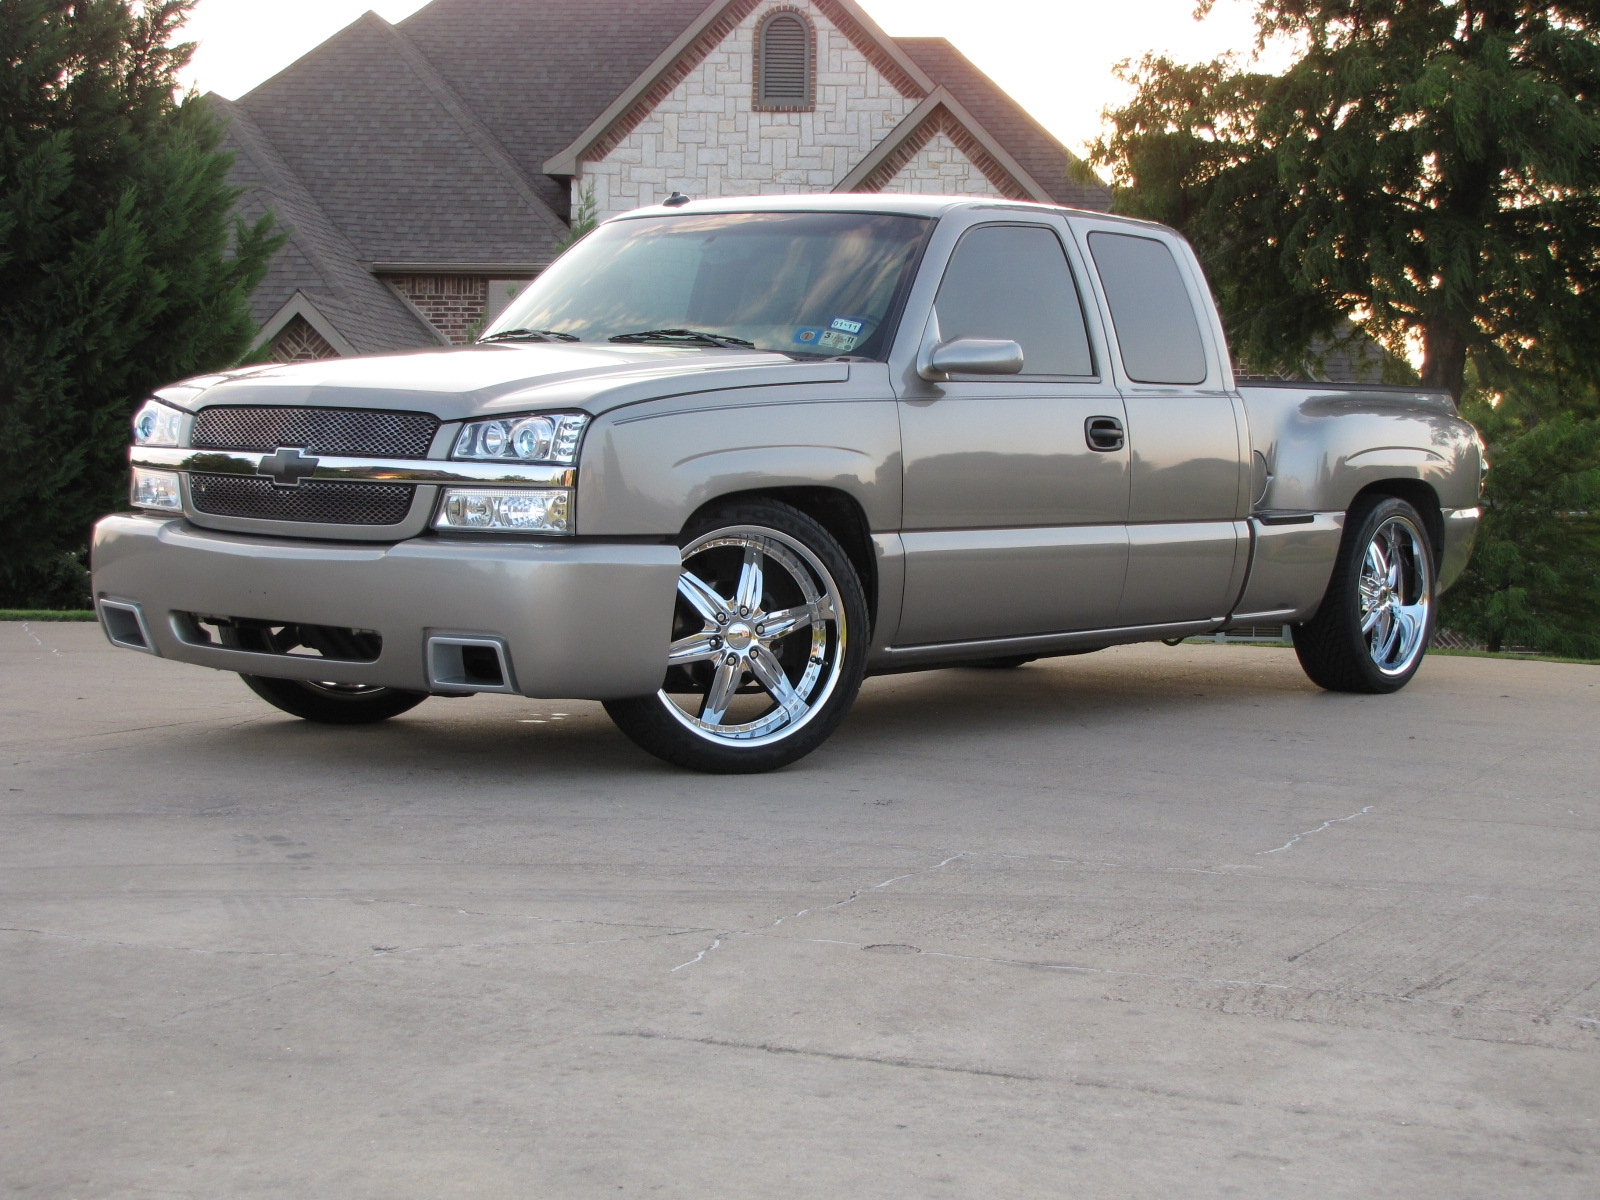 MrRelentless 2003 Chevrolet Silverado 1500 Extended Cab